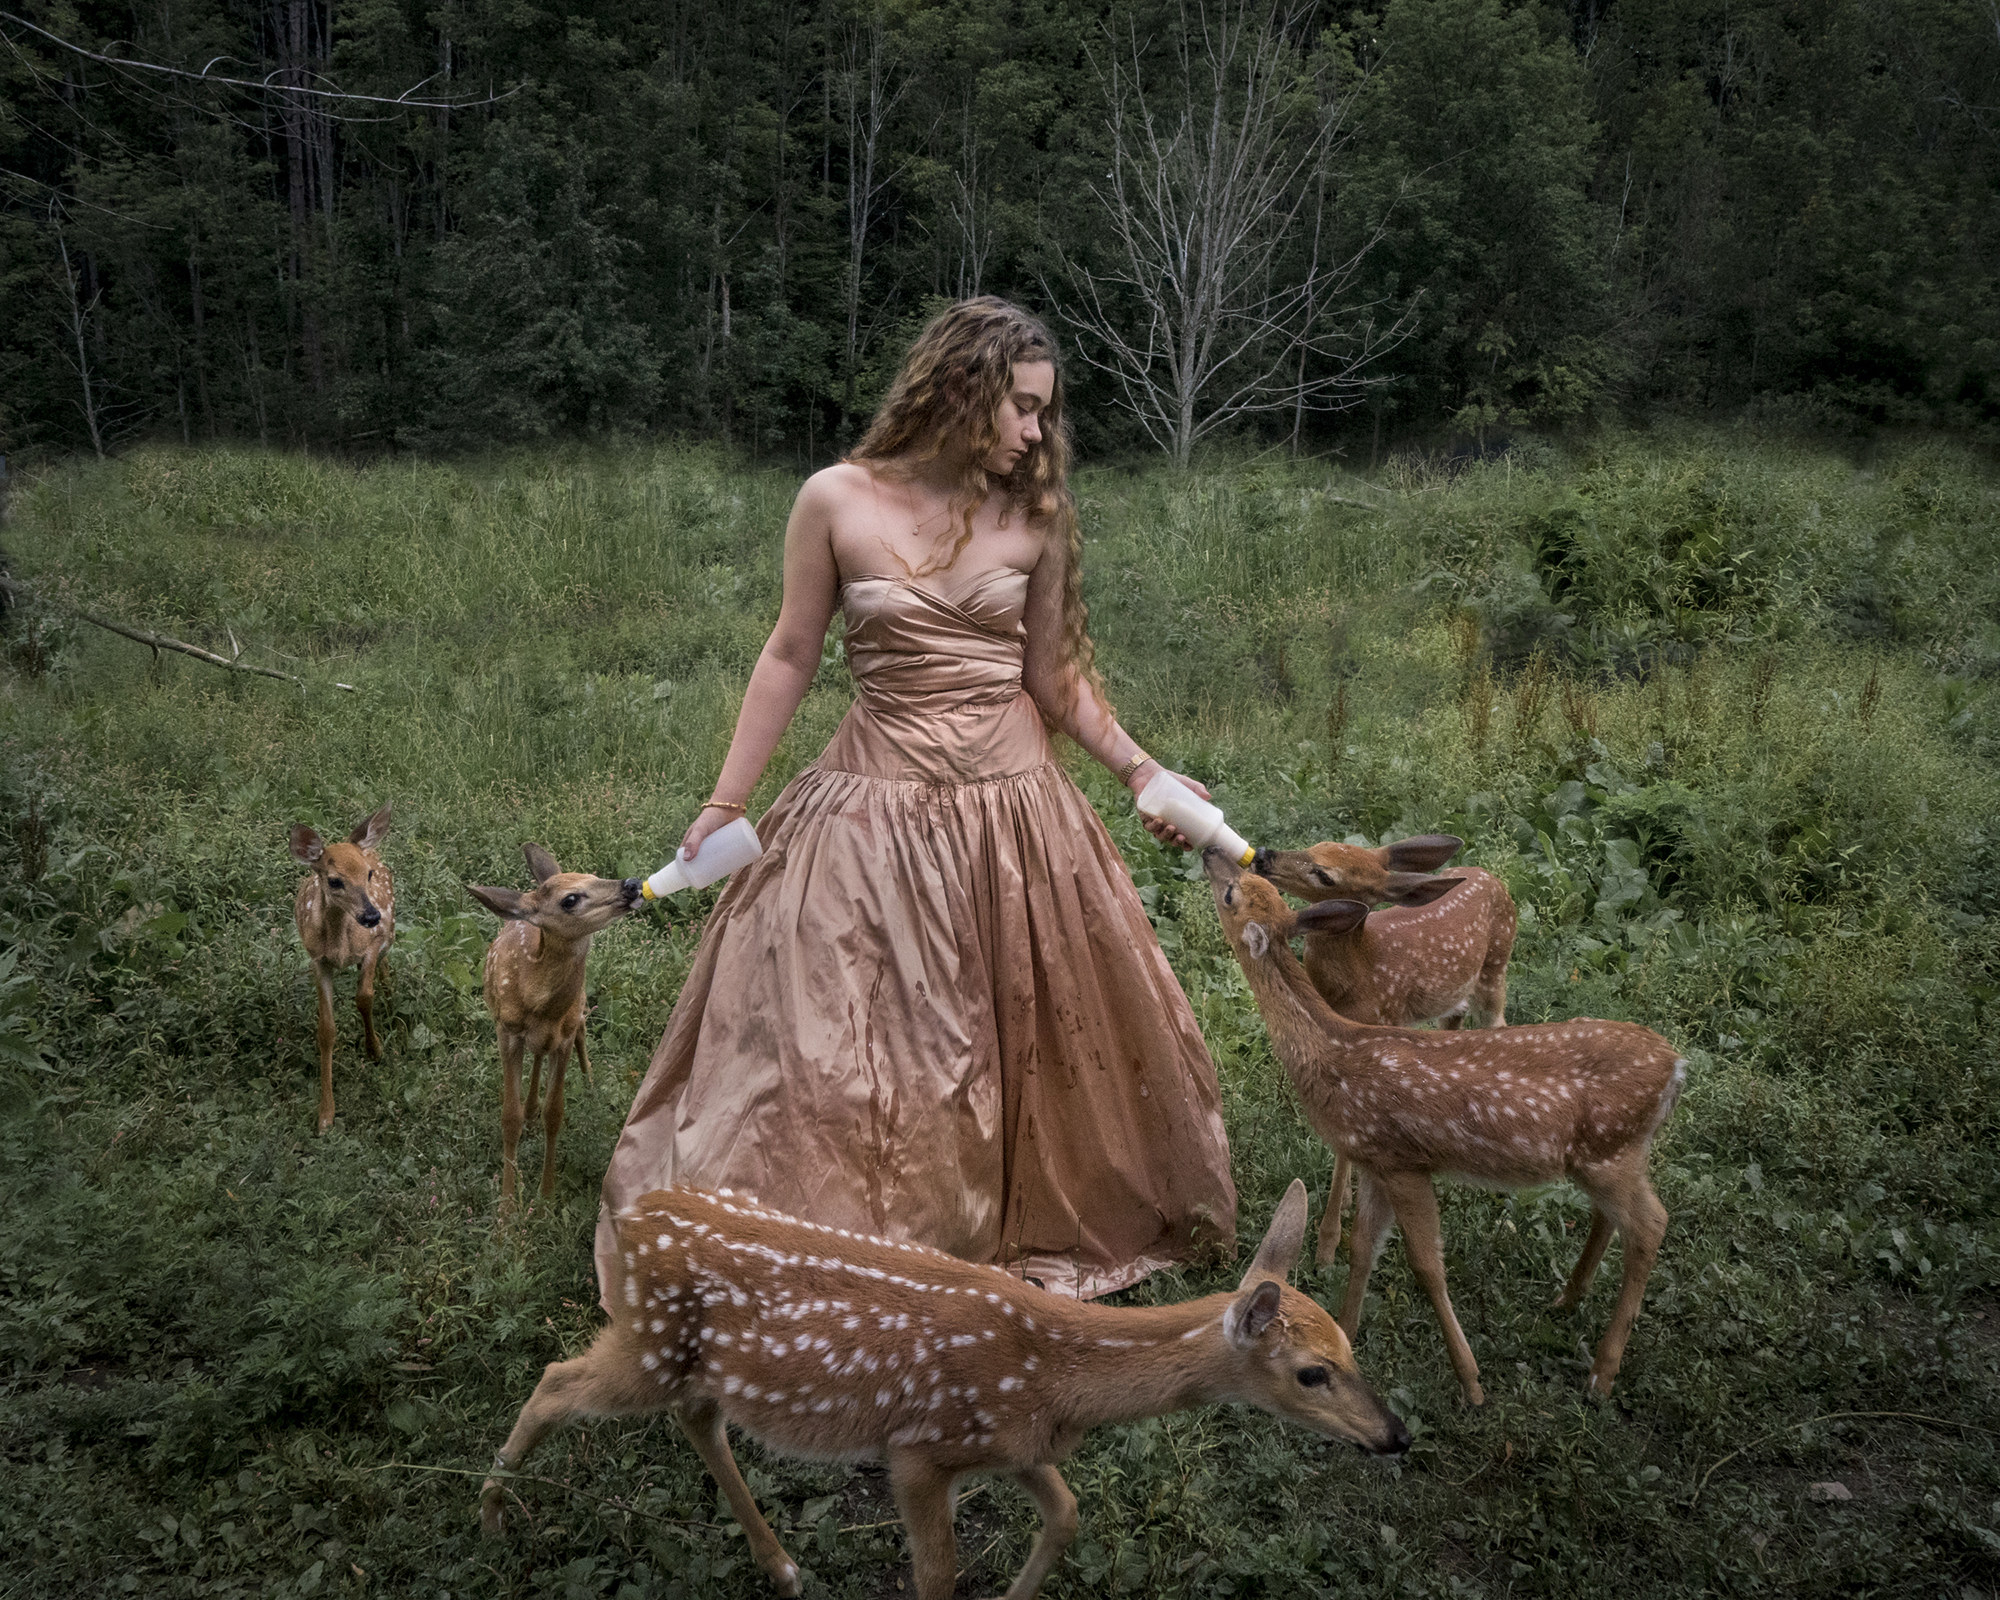 A young woman bottle feeds a group of deer